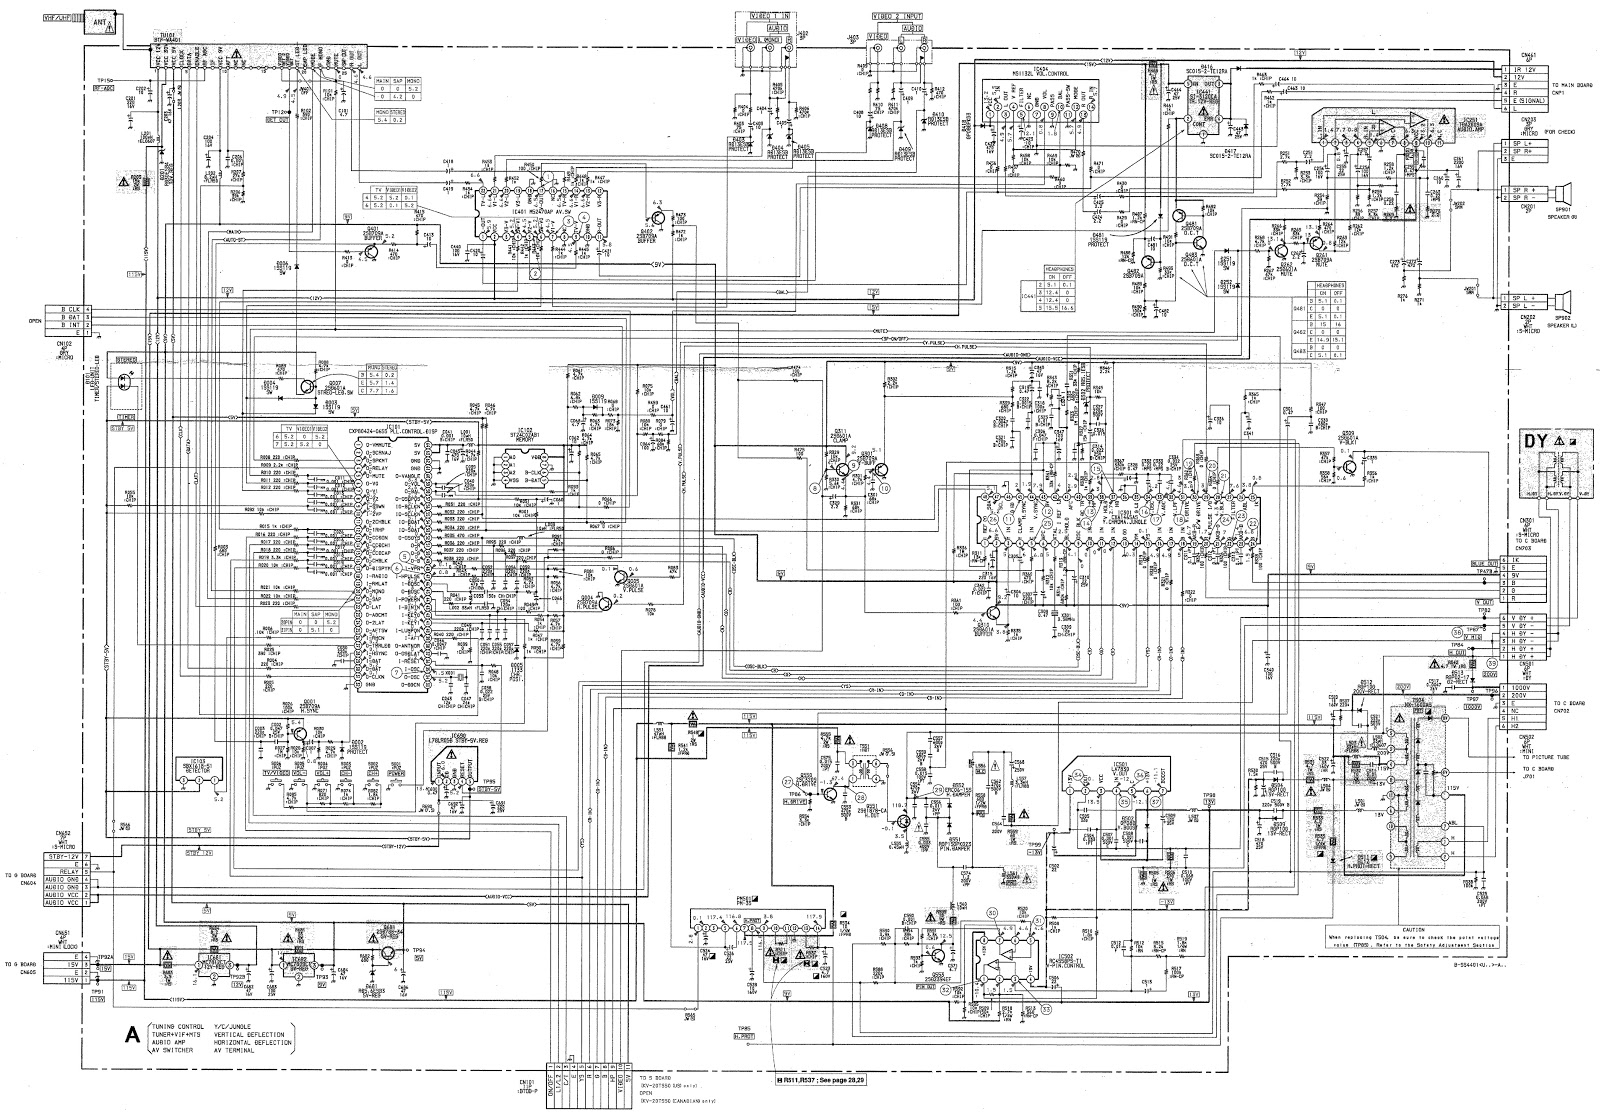 Sony Led Tv Circuit Diagram 27 Wiring Images Philips 40pfl3606 Lcd Power Supply Schematic Electro Help Main2bboard Kv20ts50 Trinitron